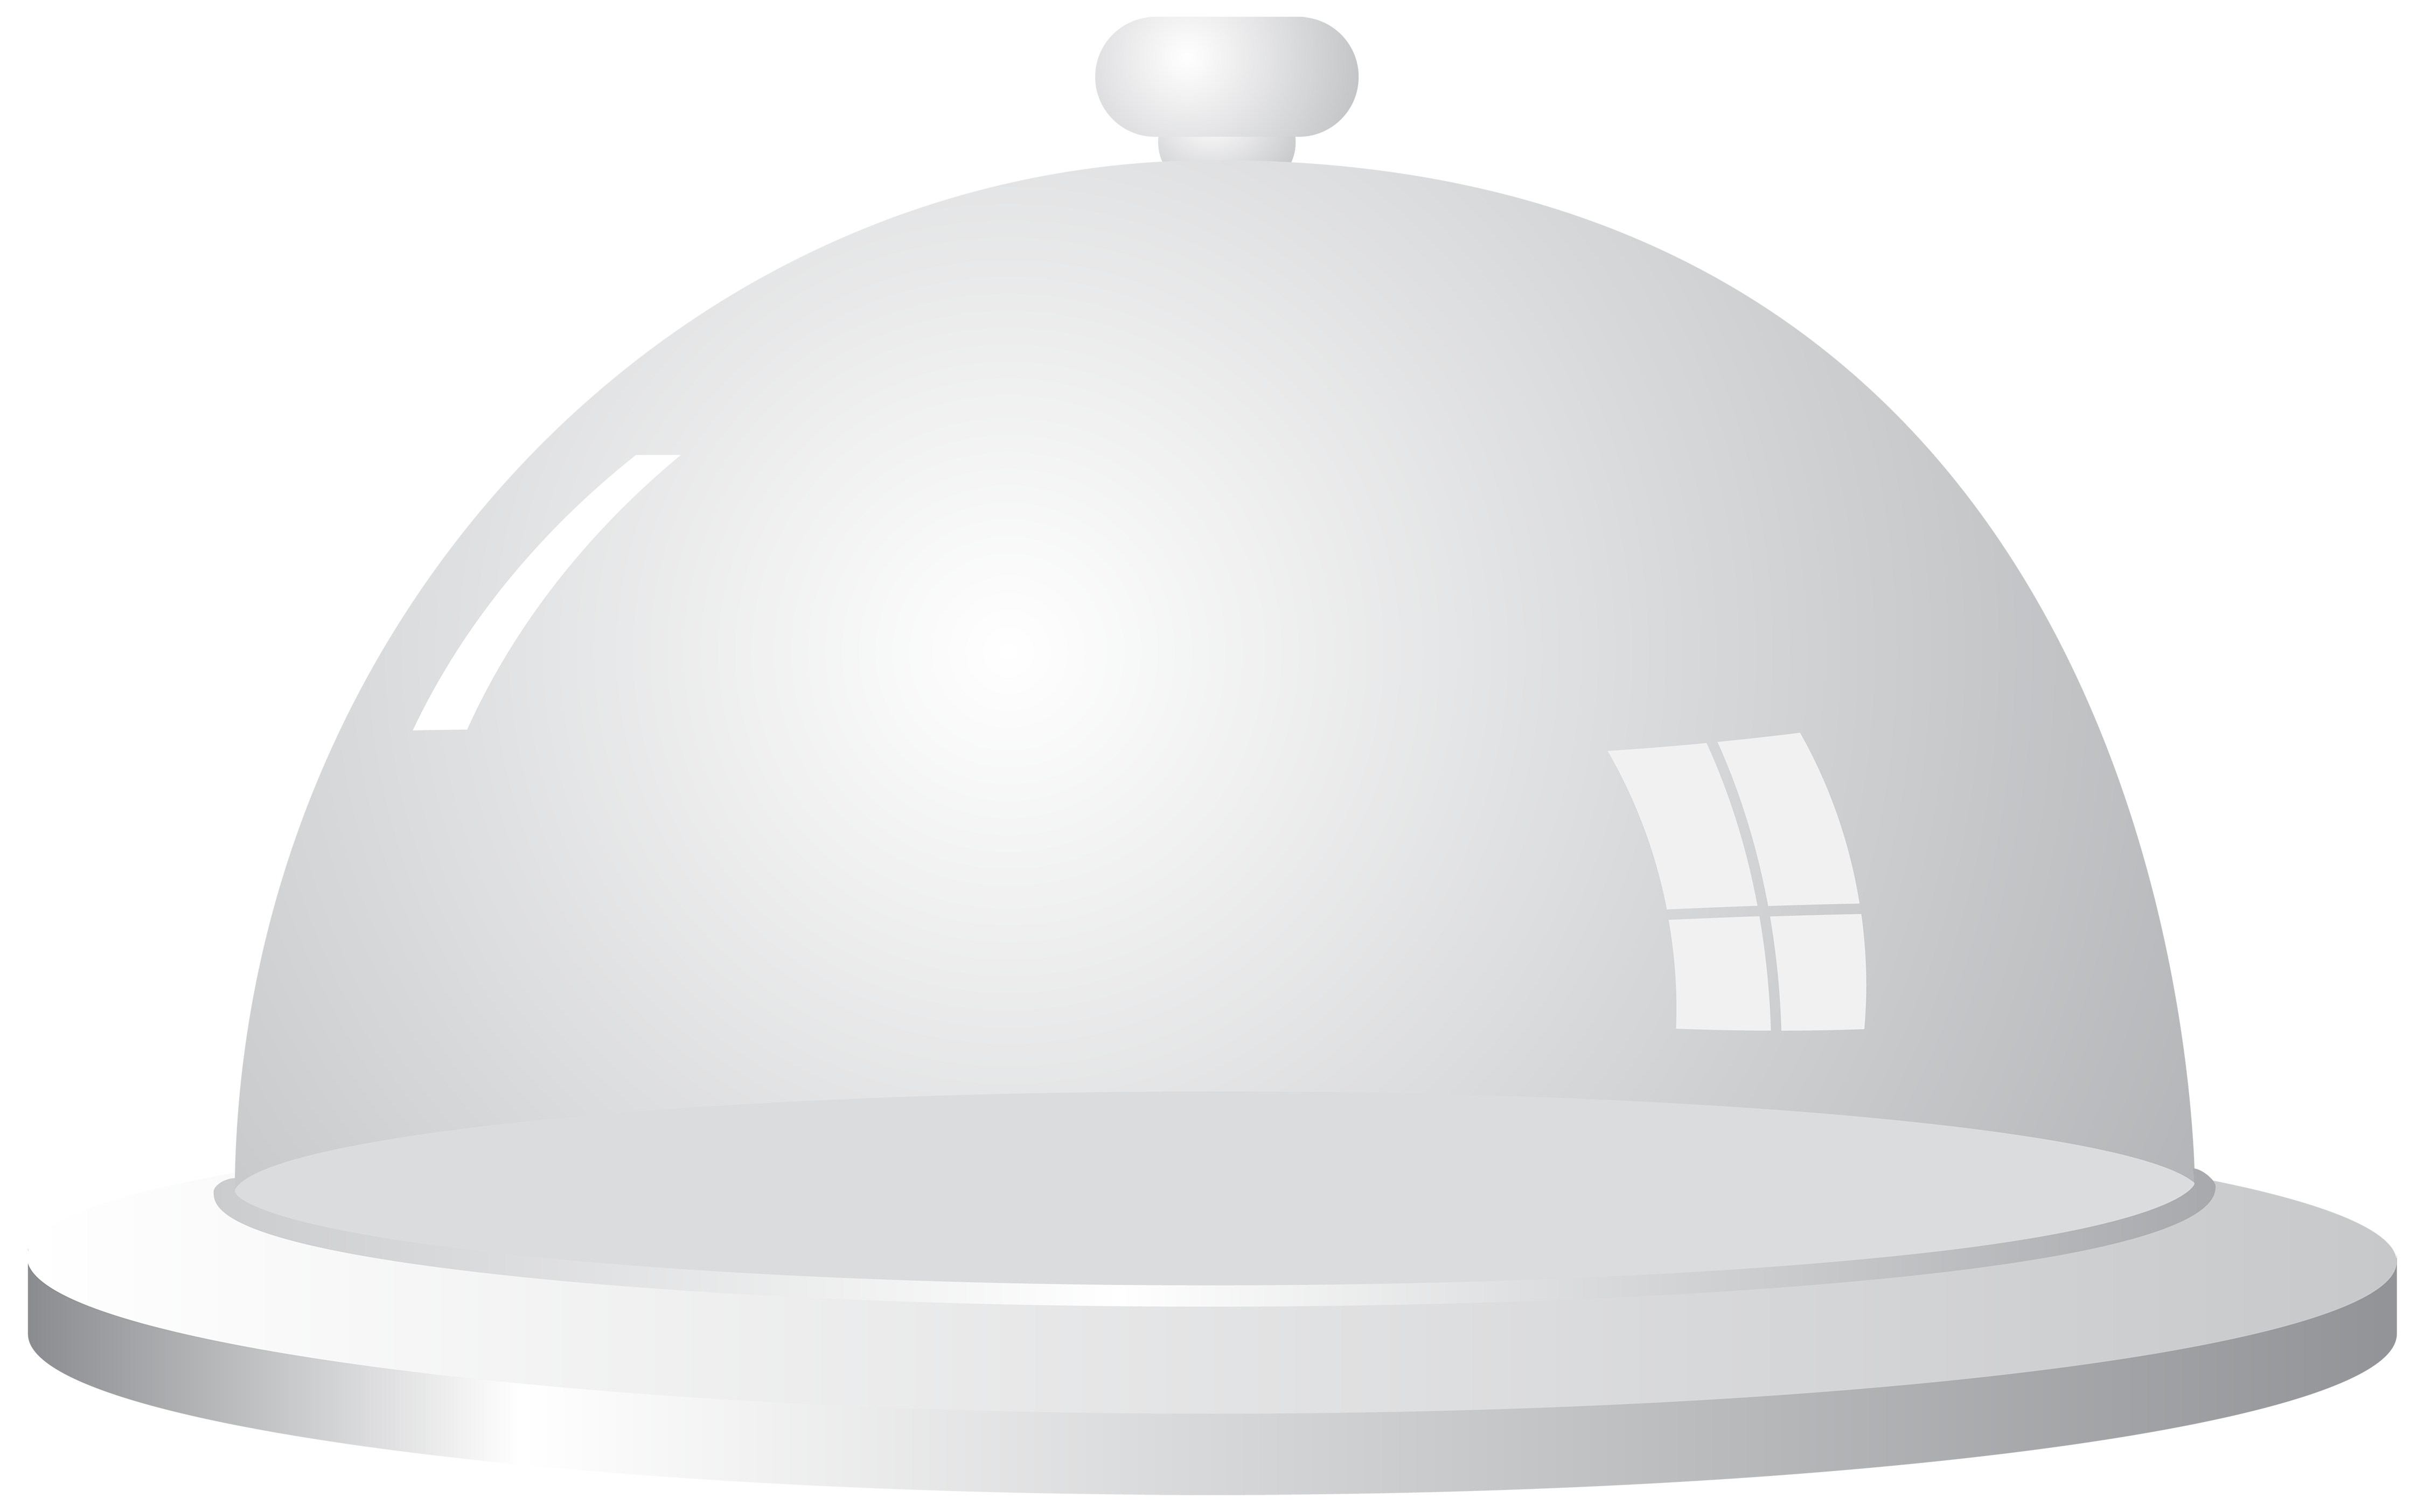 White Serving Tray PNG Clipart.